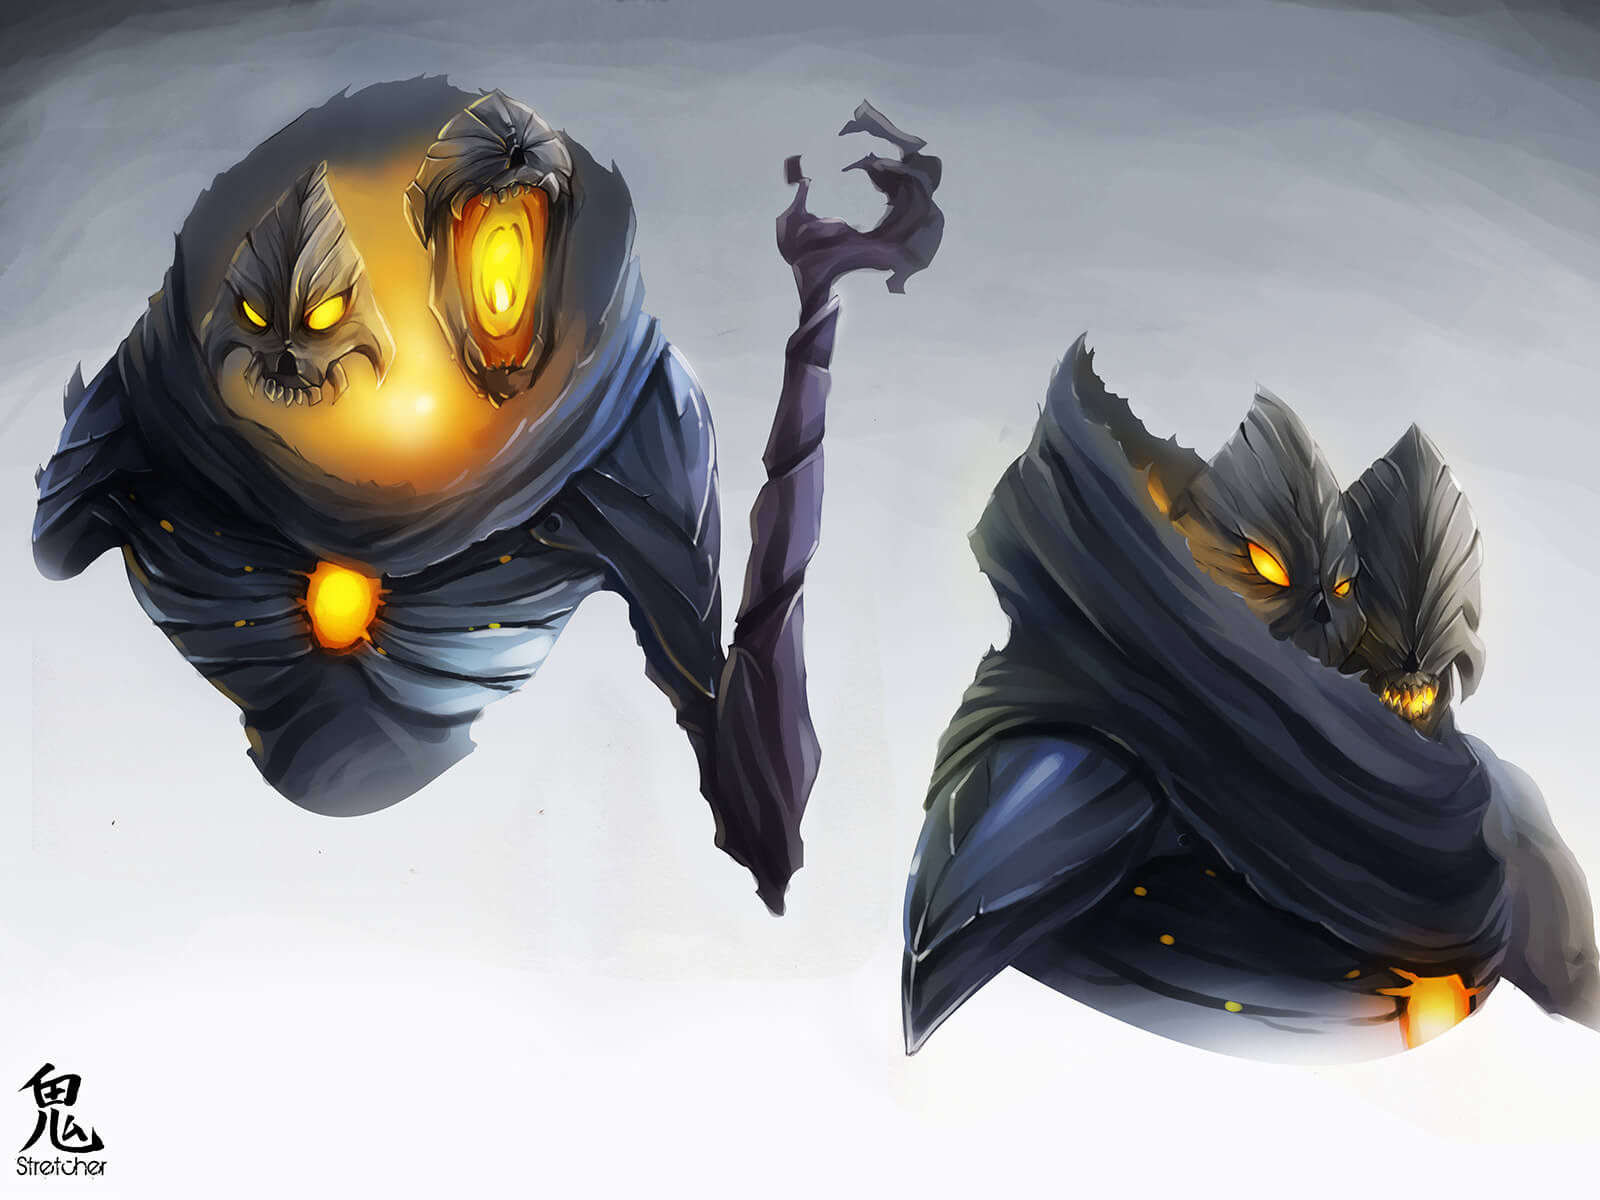 Concept art of a gray, demonic character with two heads, glowing orange from its eyes, neck, and chest.